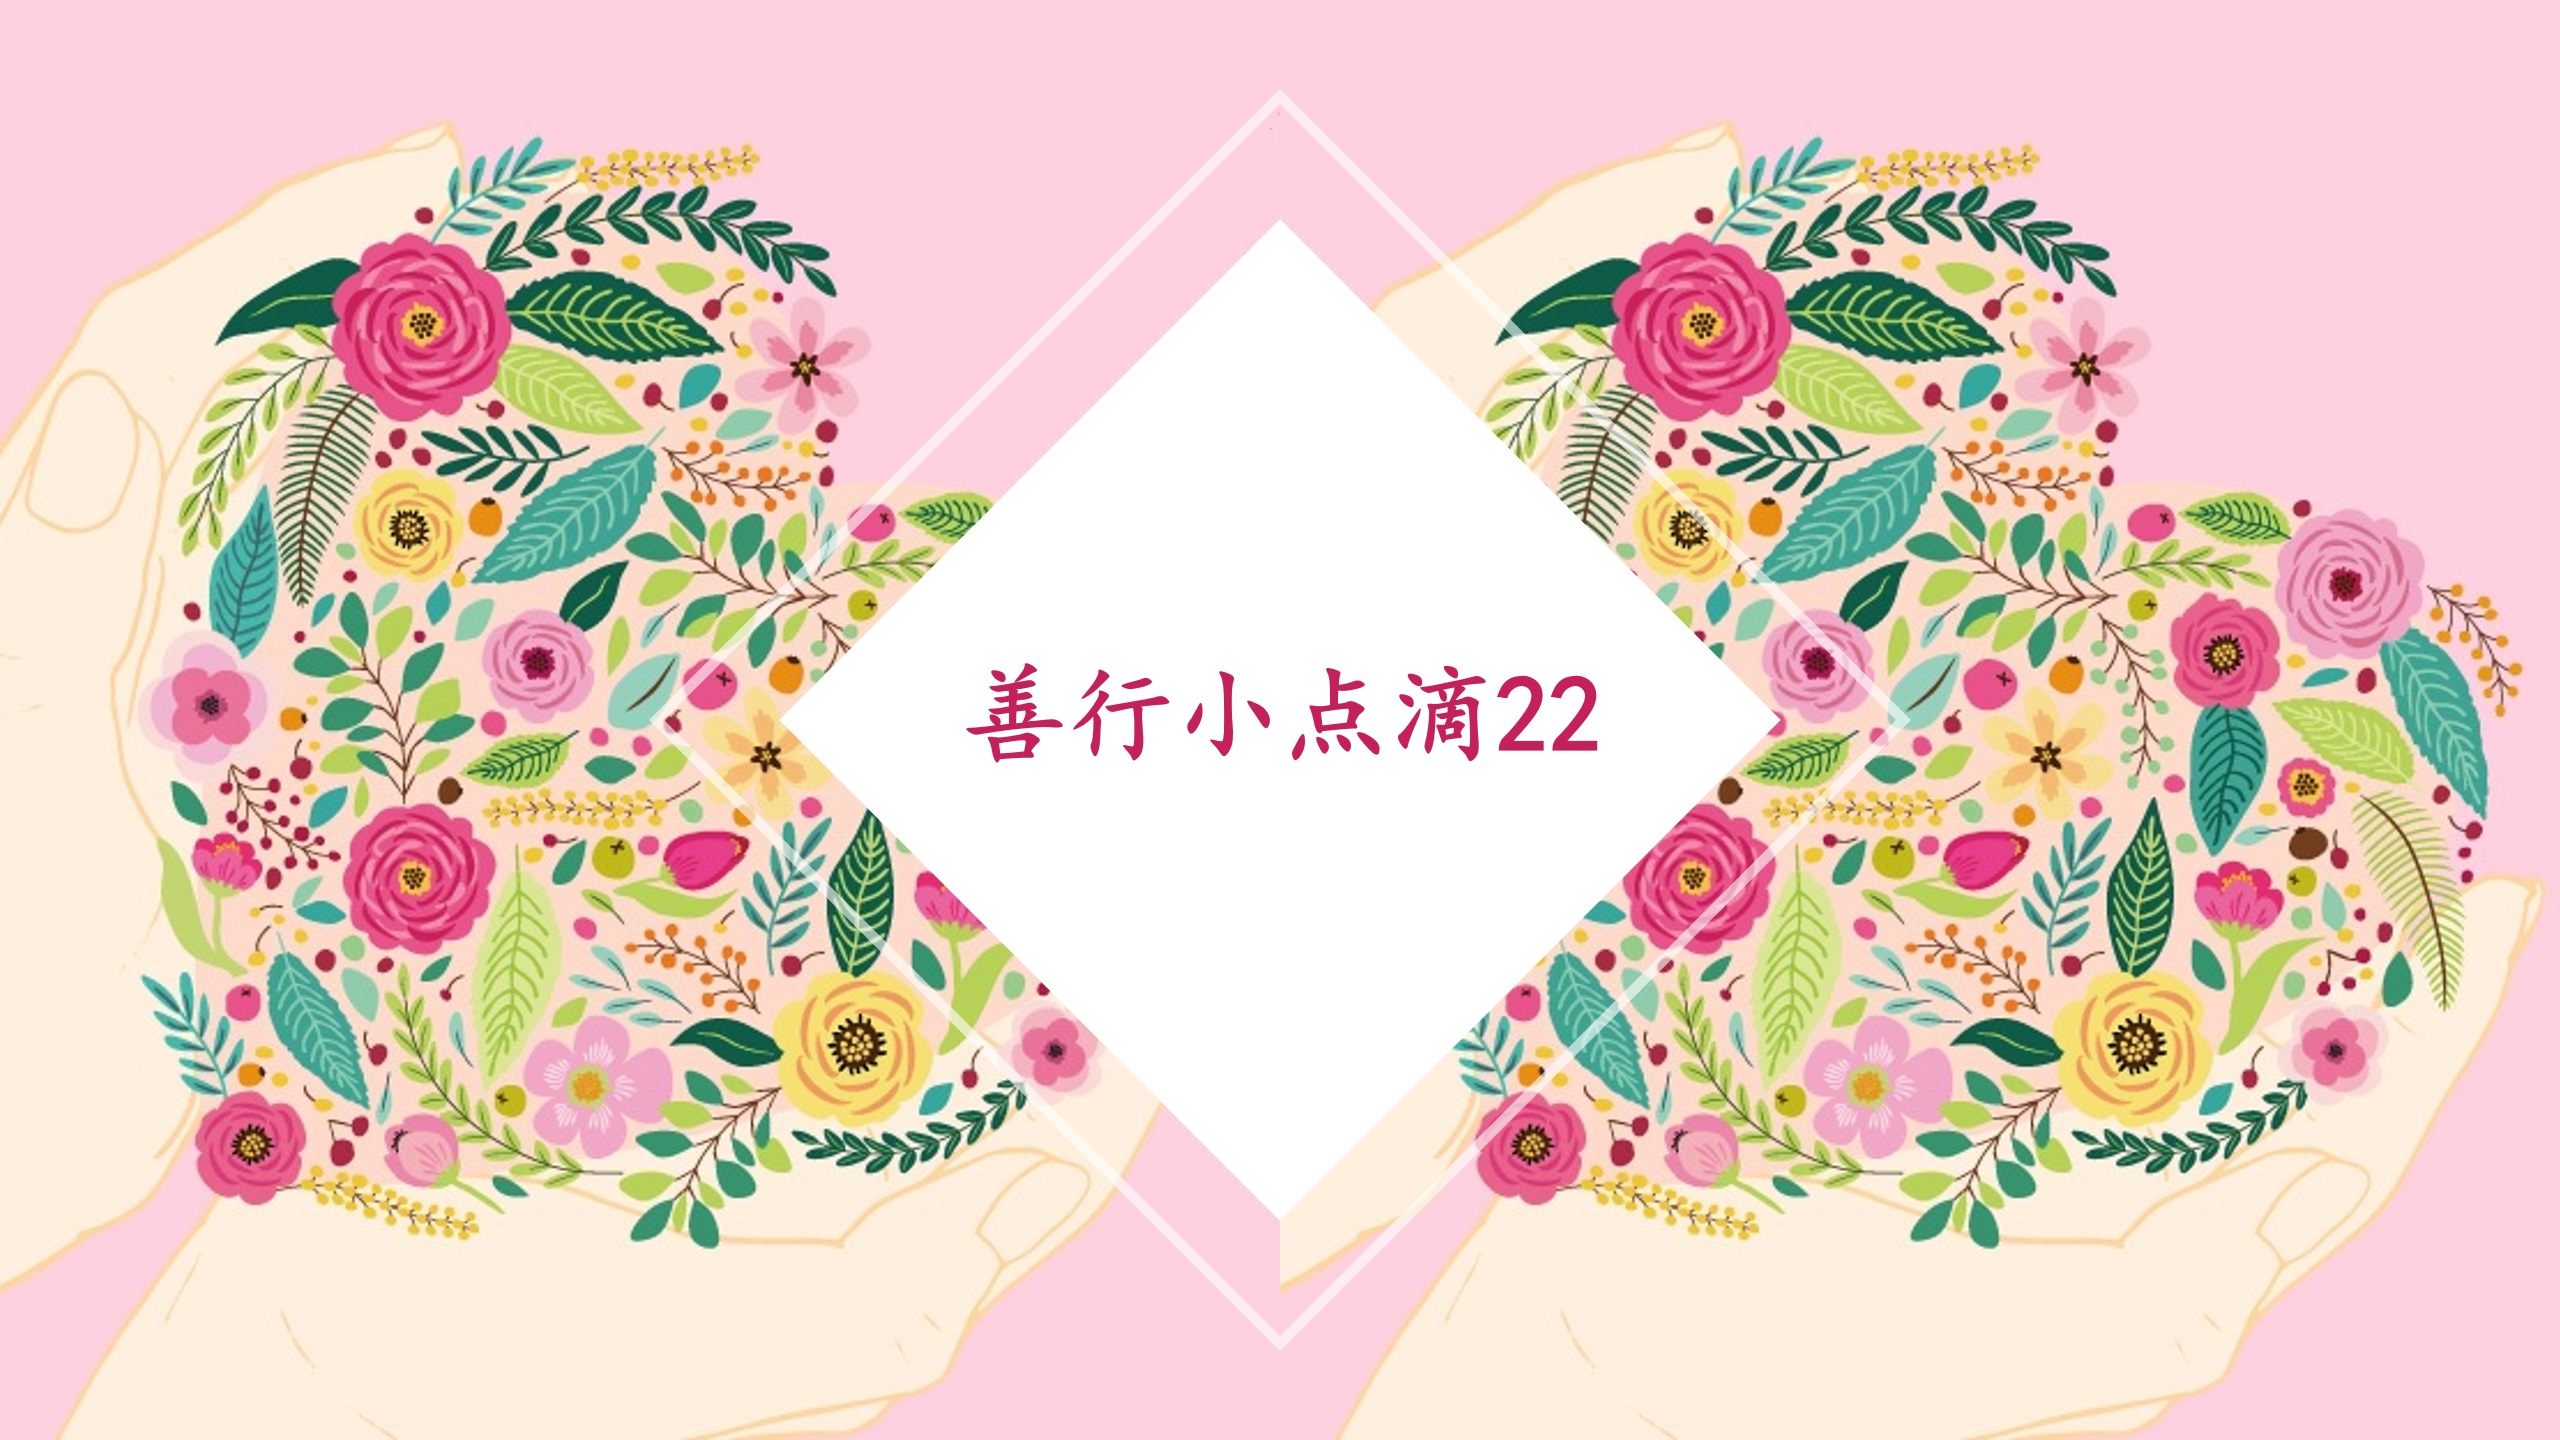 """VIRTUOUS ACT SHARING 22"" STAY HEALTHY STAY POSITIVE 41 善行小点滴分享 22 – 打包正能量 好好护健康  07.07.2020"